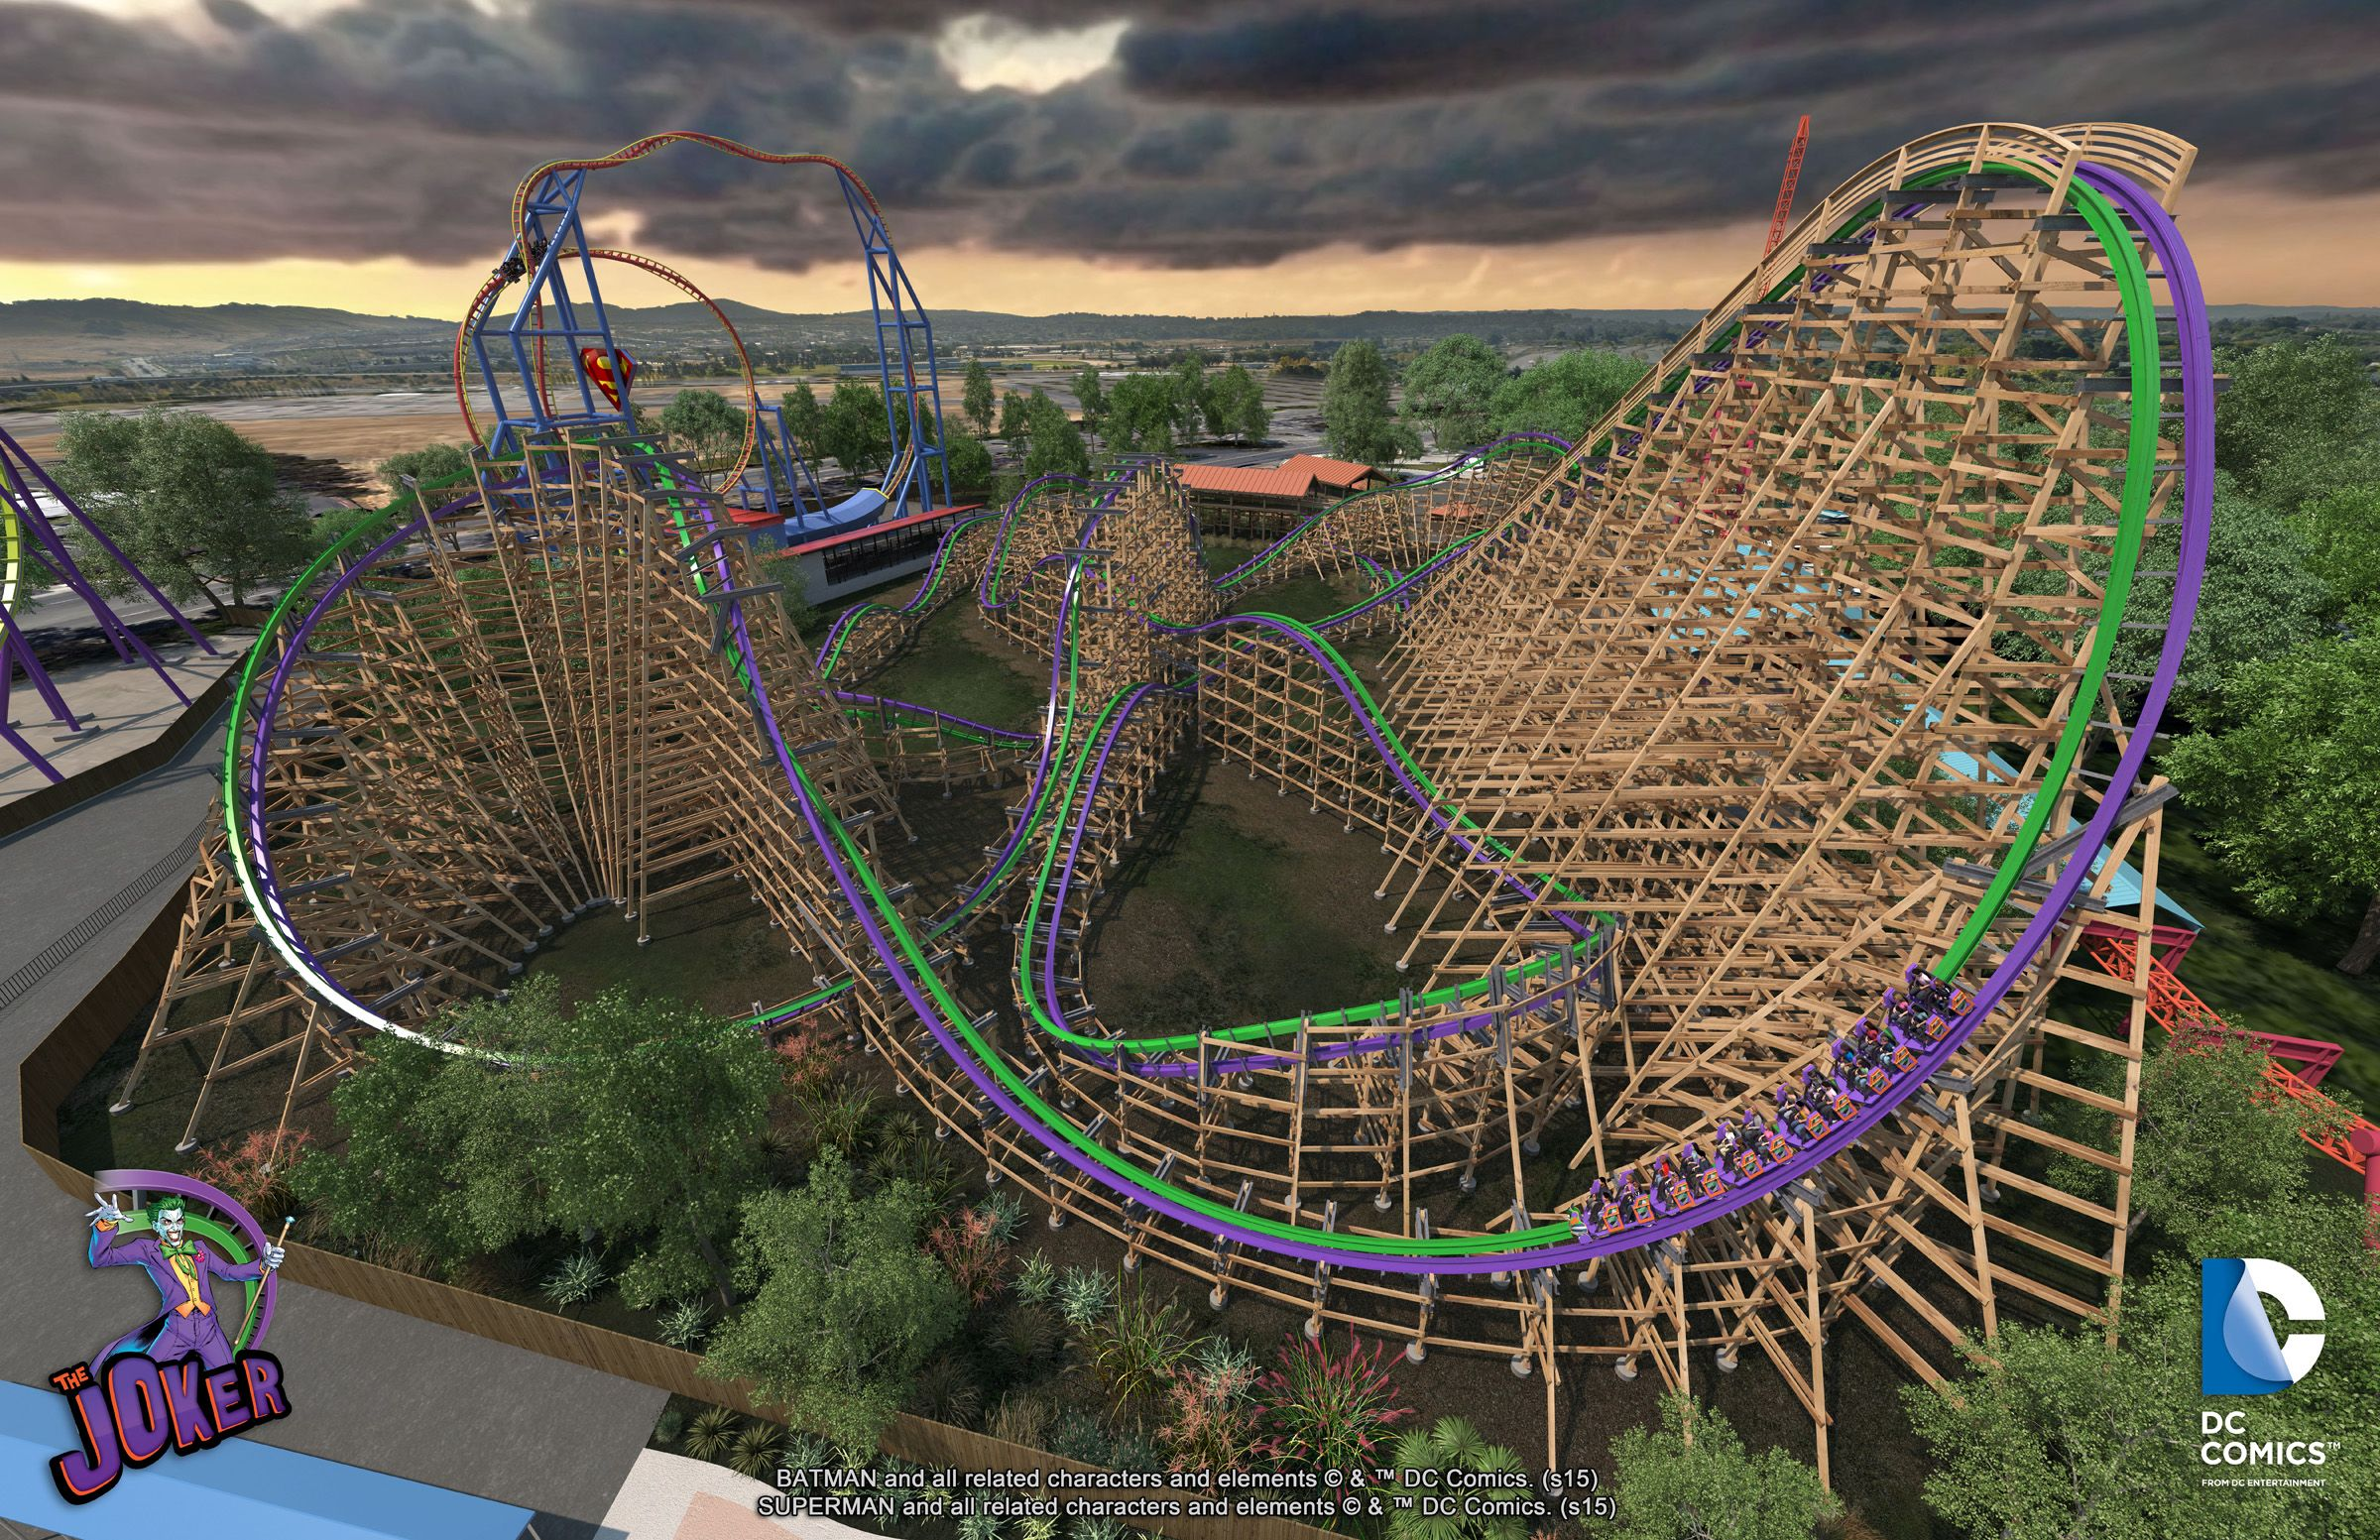 The Joker is a hybrid wood and steel coaster coming to Six Flags ...